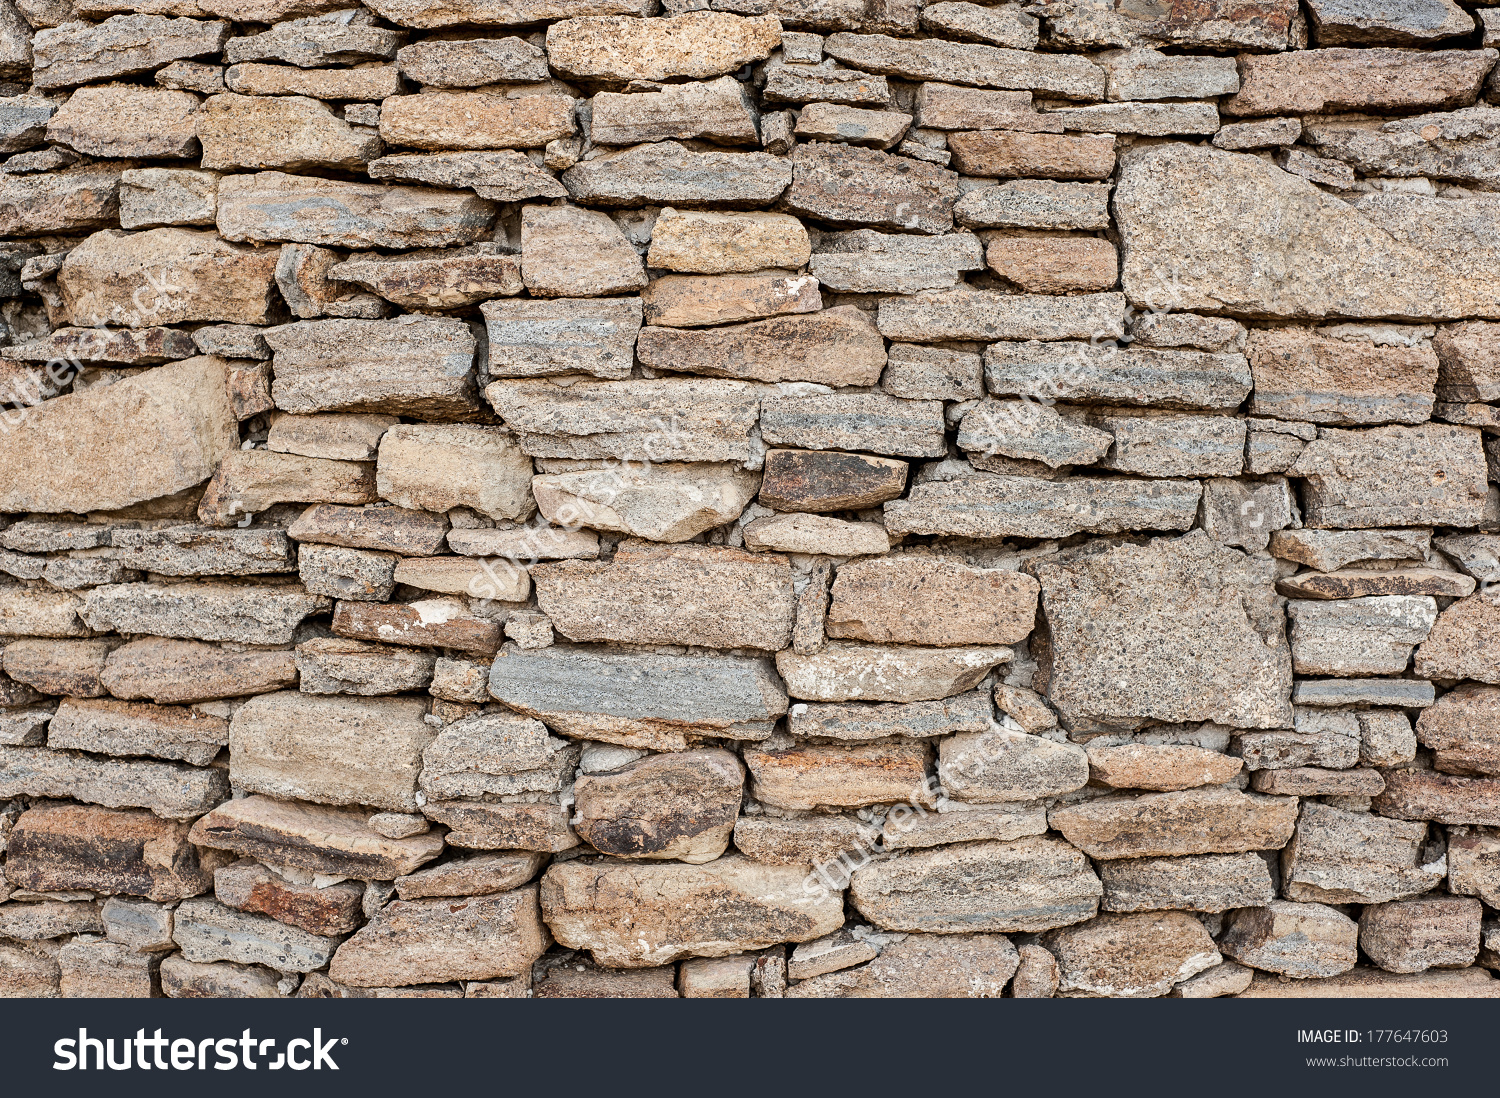 Decorative Old Look Rough Surface Rubble Stock Photo 177647603.